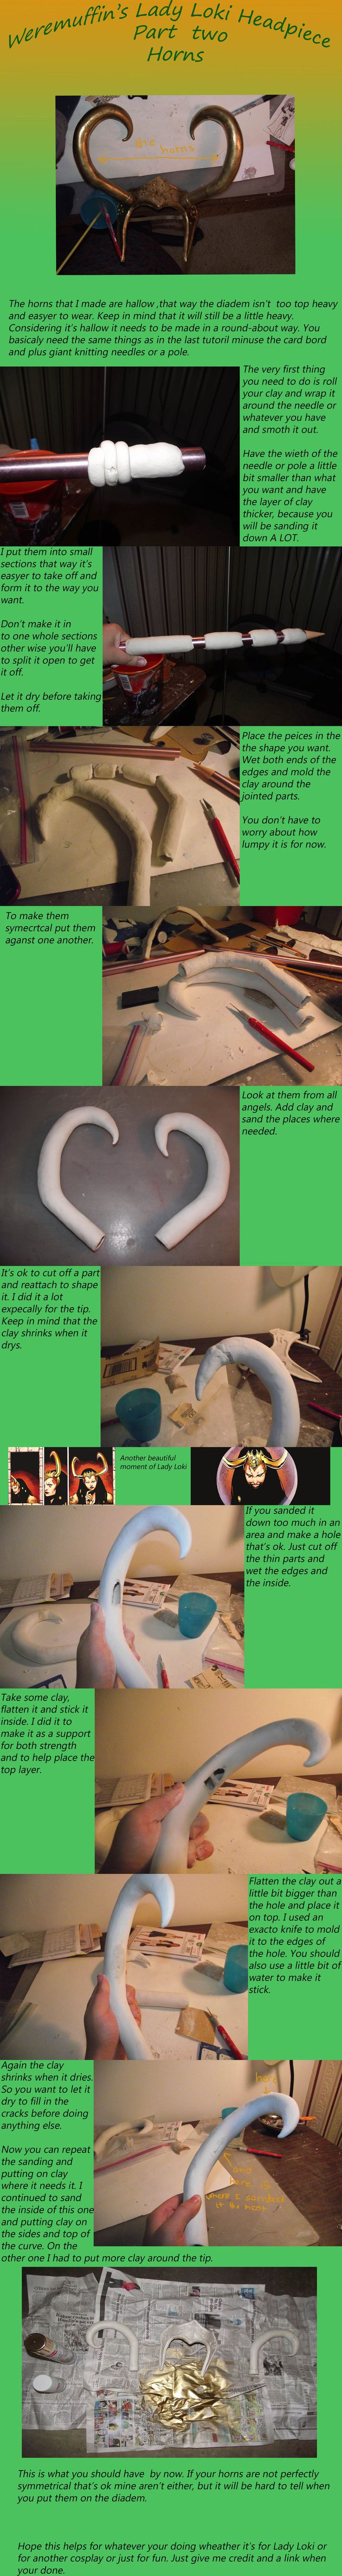 Lady Loki tutorial headpiece part two: The Horns by ~wearmuffin on deviantART